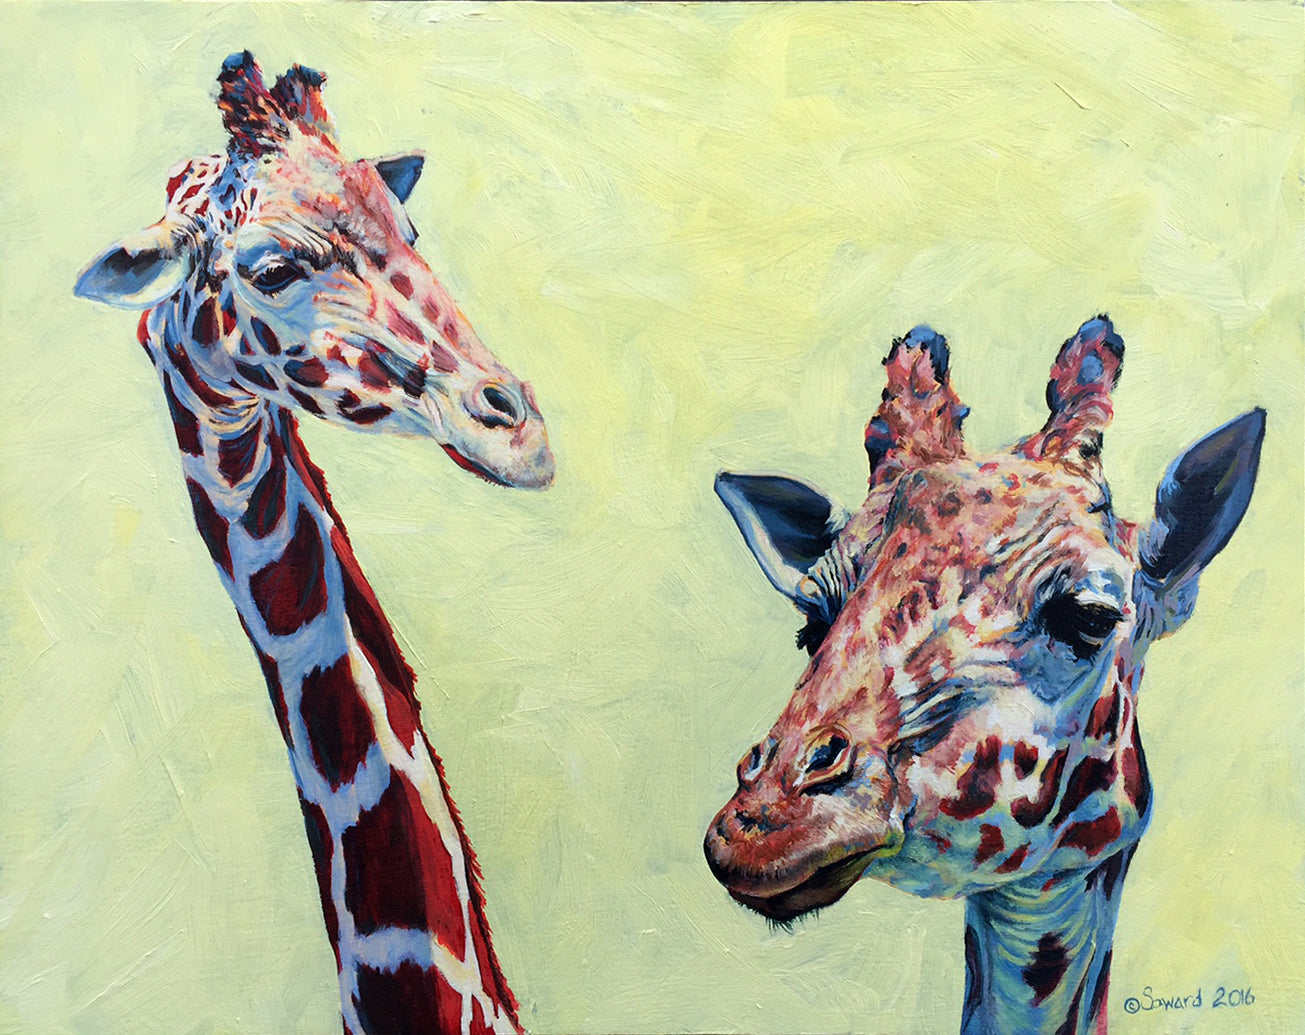 Giraffe-itude, copyright Sarah Soward, painting of two giraffes with attitude on a yellow background